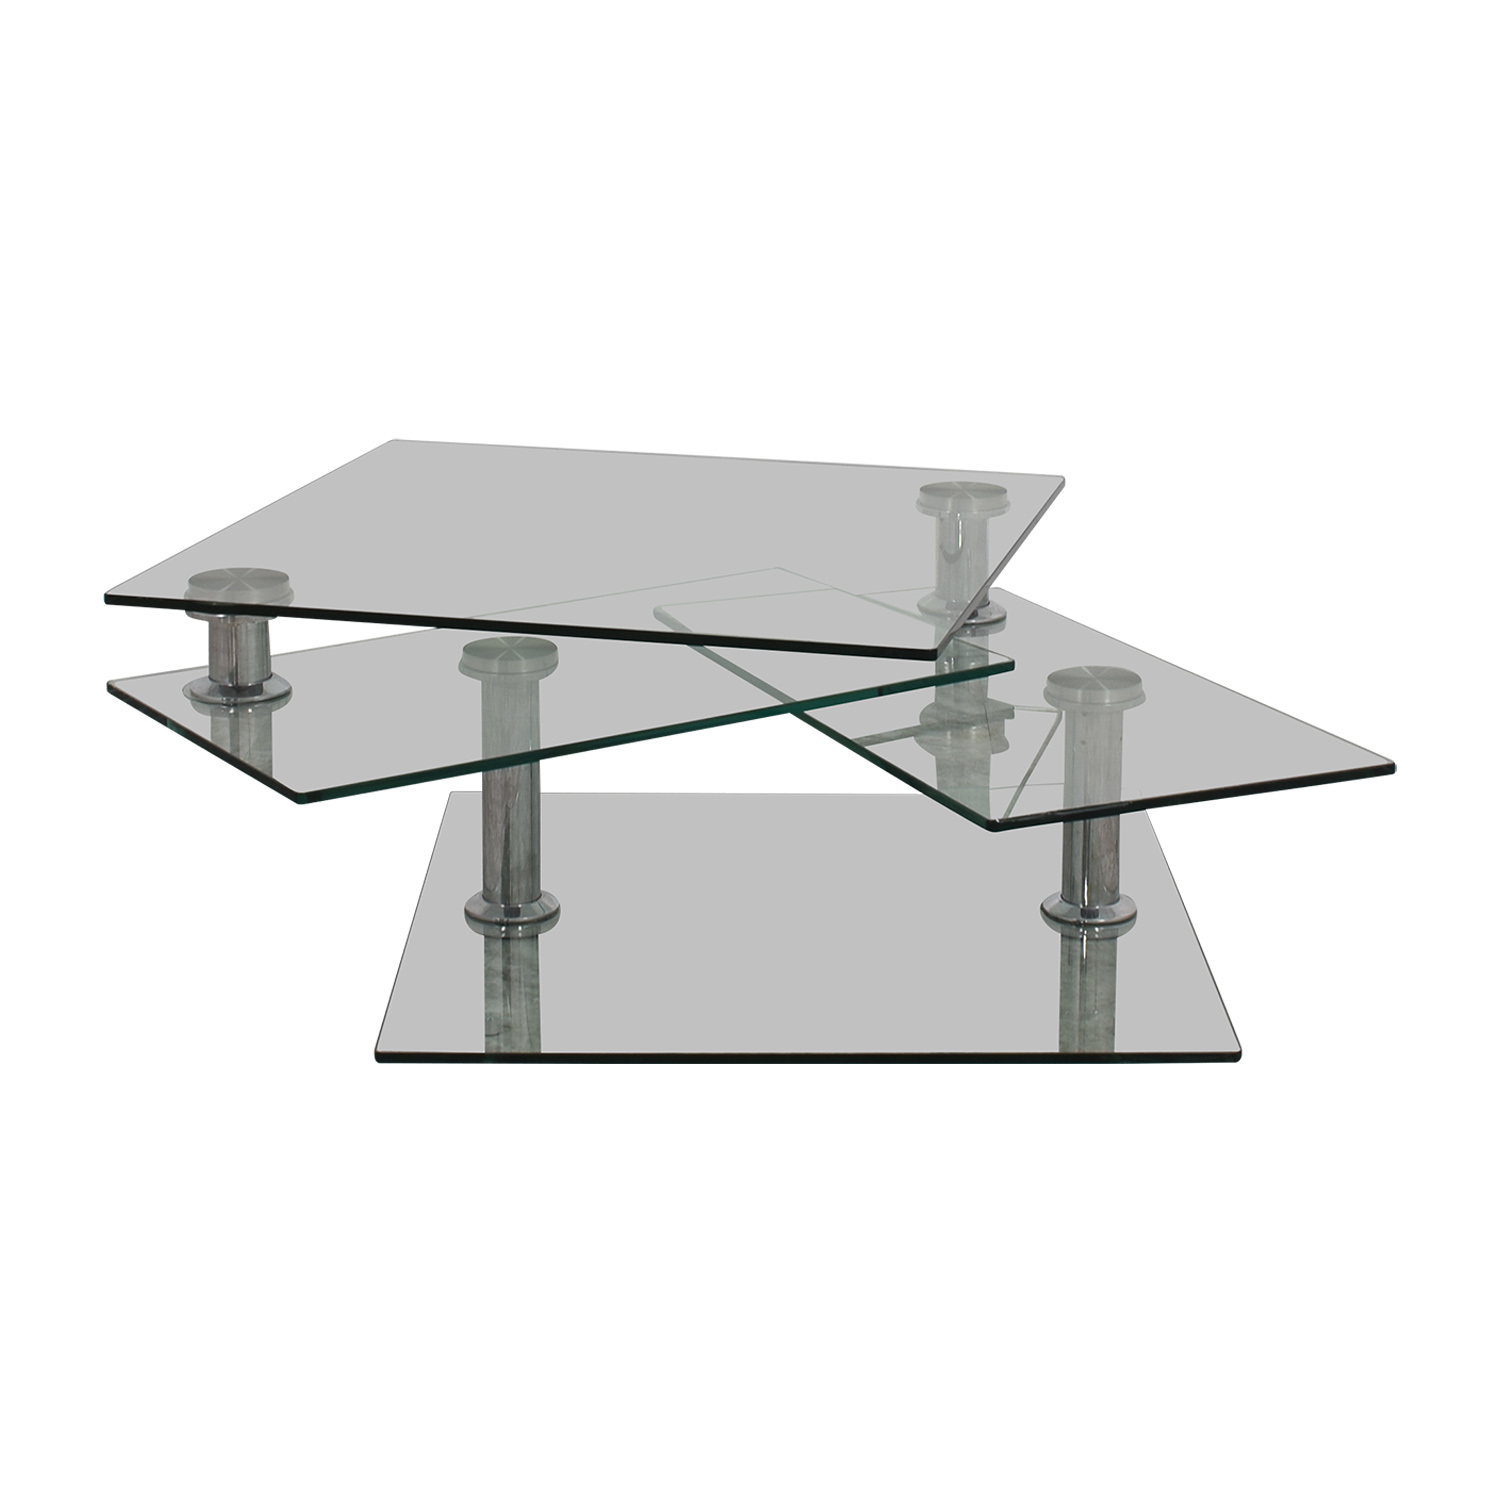 OFF Z Gallerie Z Gallerie Movable Glass Coffee Table Tables